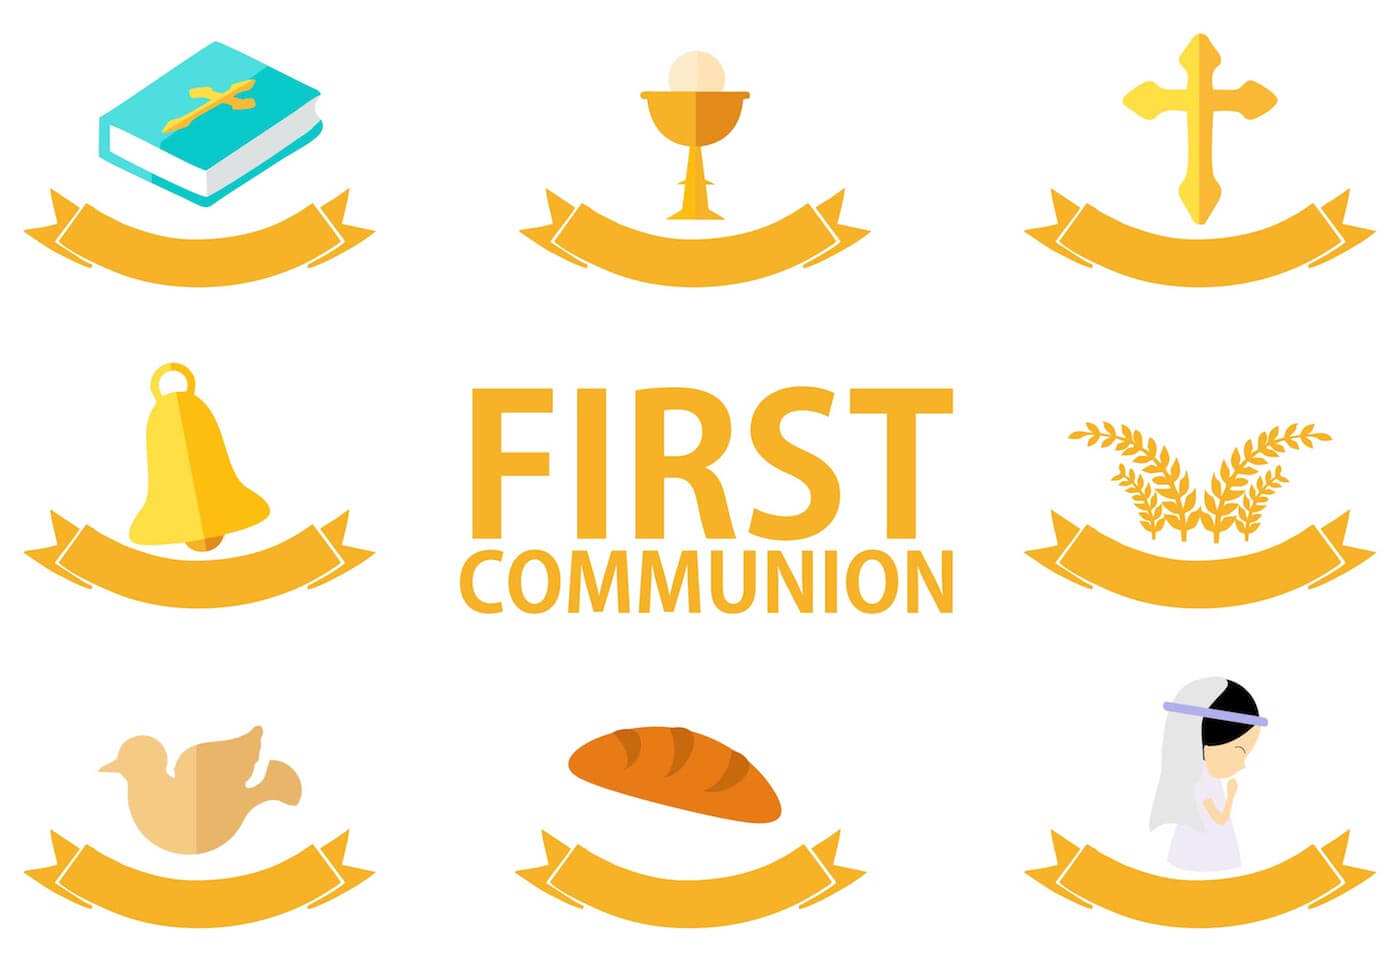 First Communion Template Free Vector Art – (25 Free Downloads) For Free Printable First Communion Banner Templates